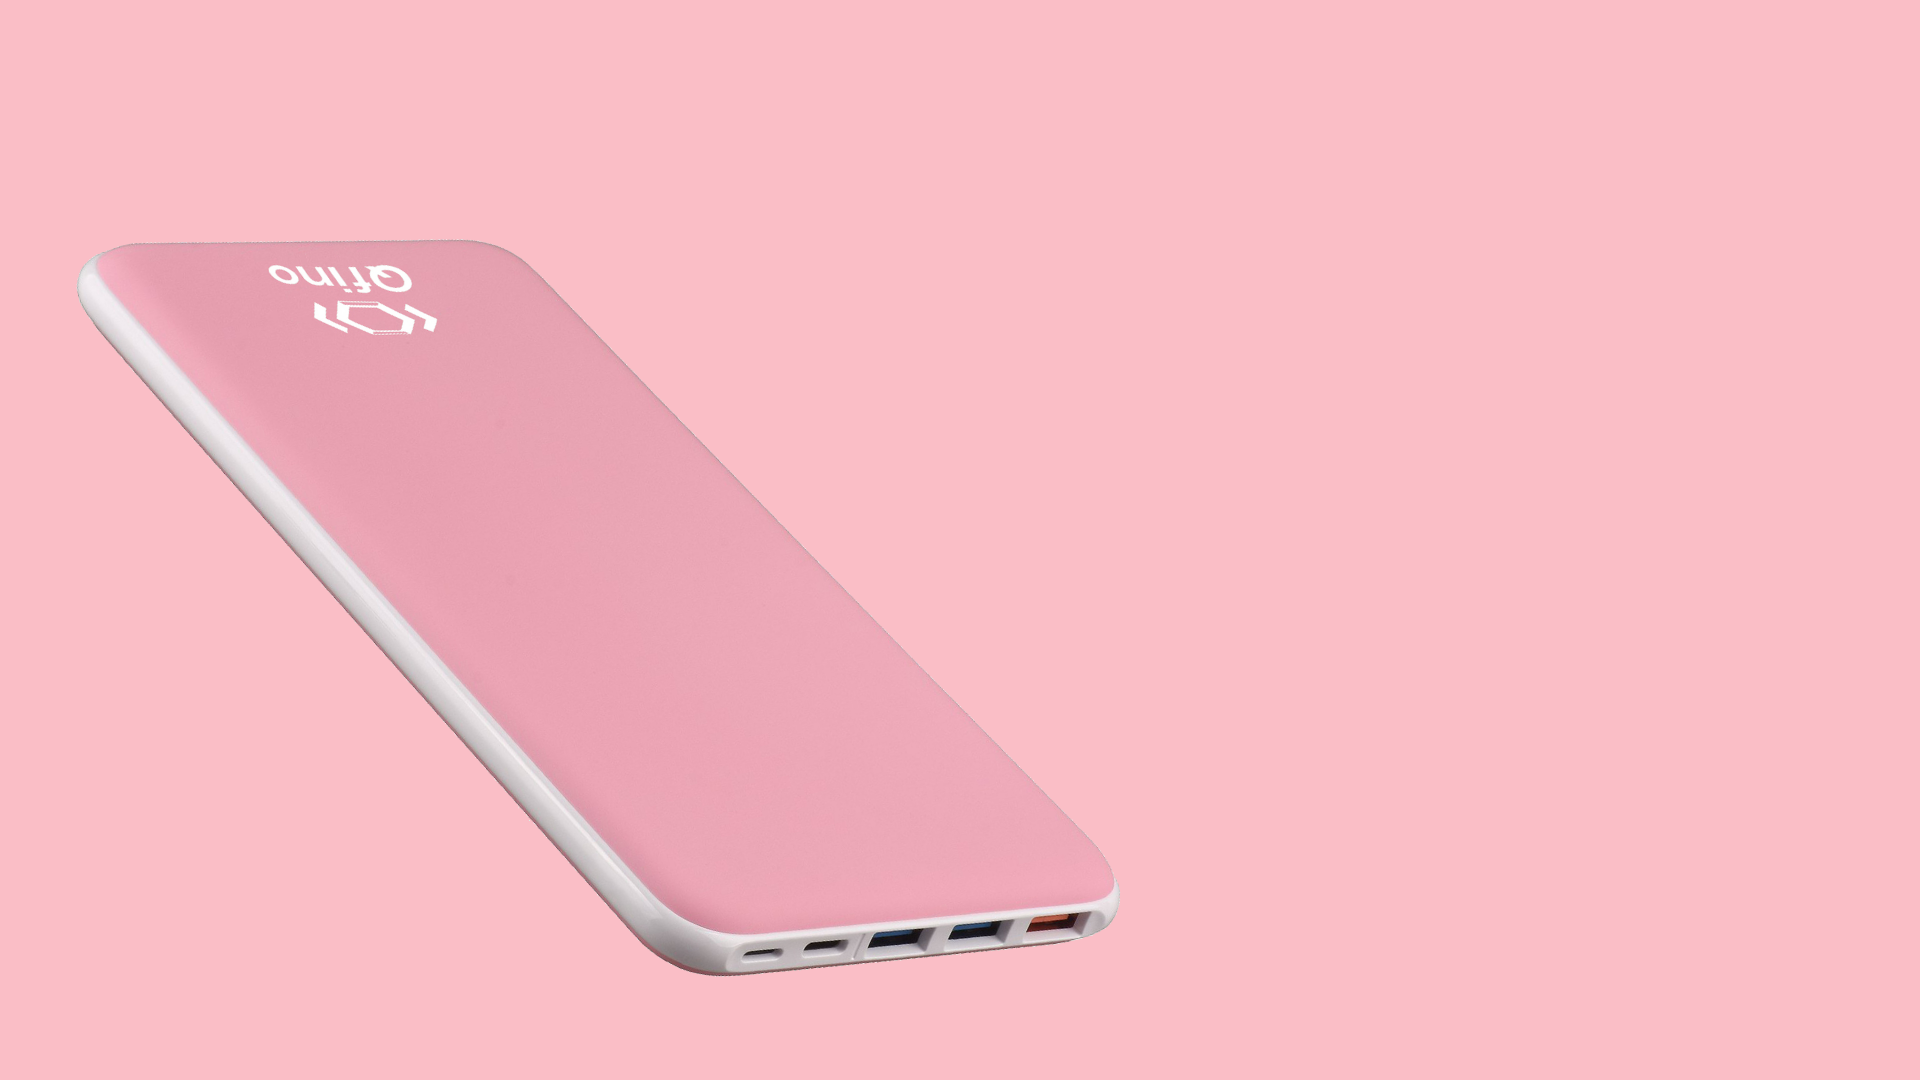 Qfino Power bank Pink background